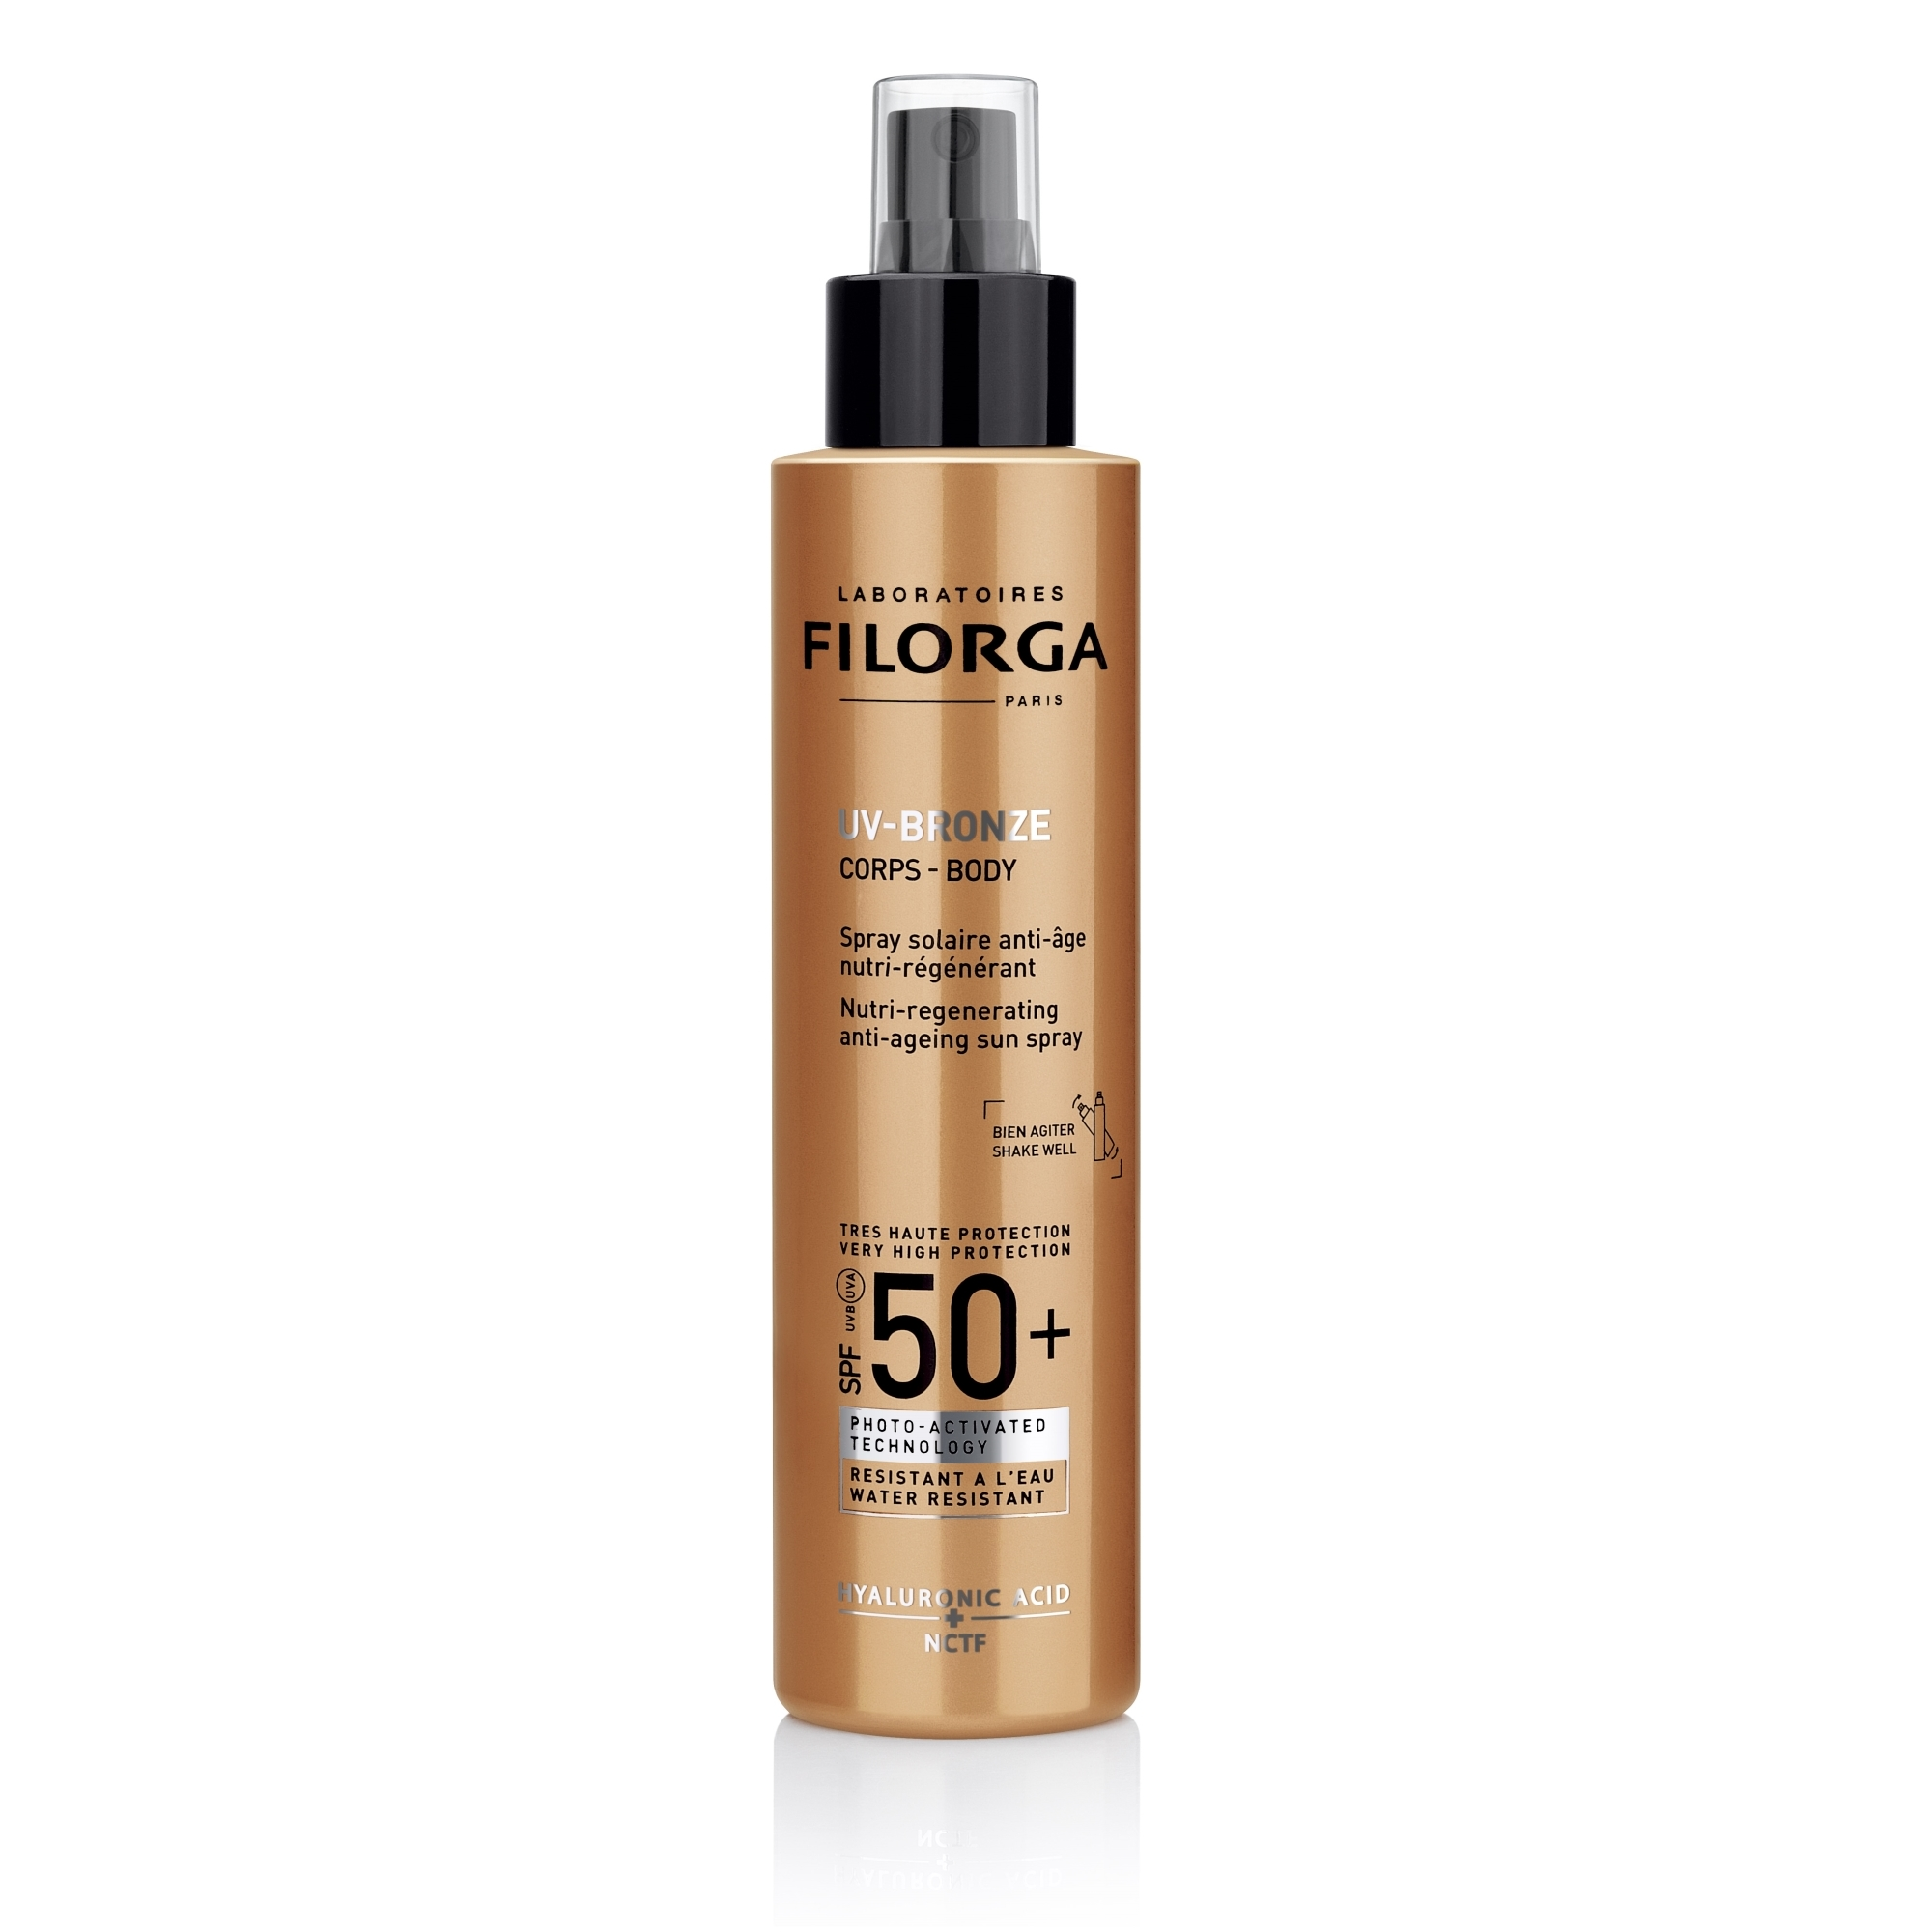 UV Bronze Body SPF 50+